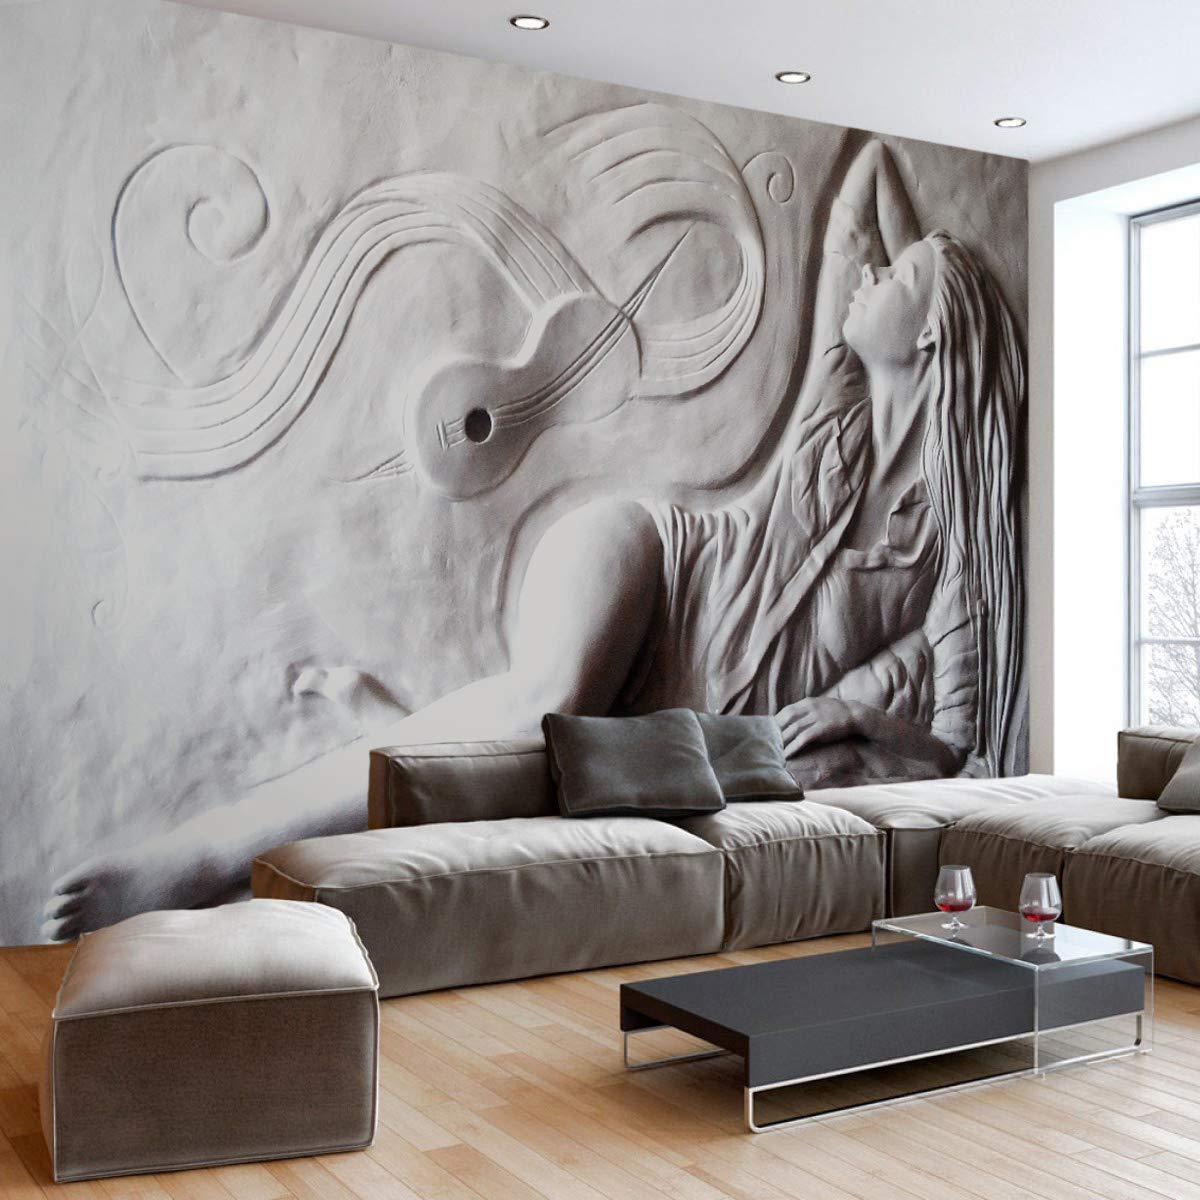 Amazon Com Murwall Sculpture Wallpaper 3d Embossed Look Artist Wall Mural Cement Woman Wall Print Classic Home Decor Cafe Design Living Room Entryway Bedroom Childroom Handmade